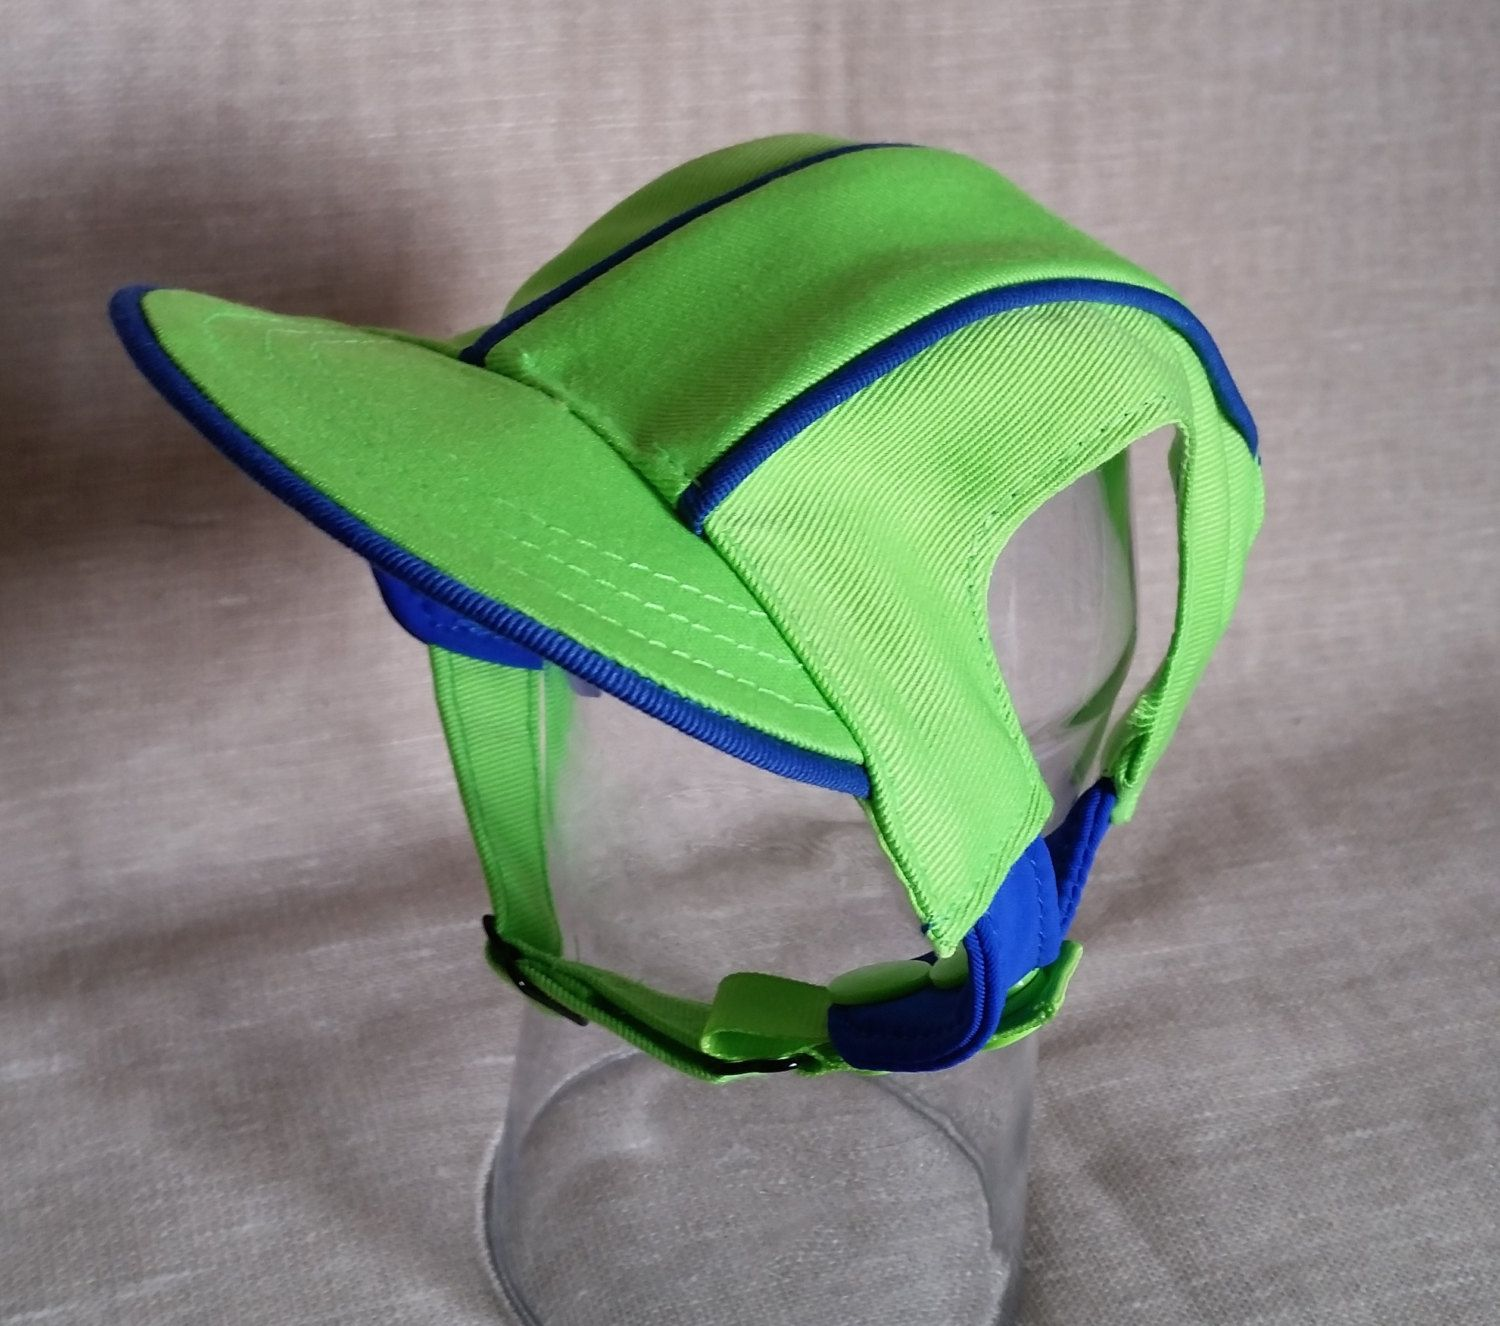 81279f43d12 Rocelle s Dog Cap - For Small